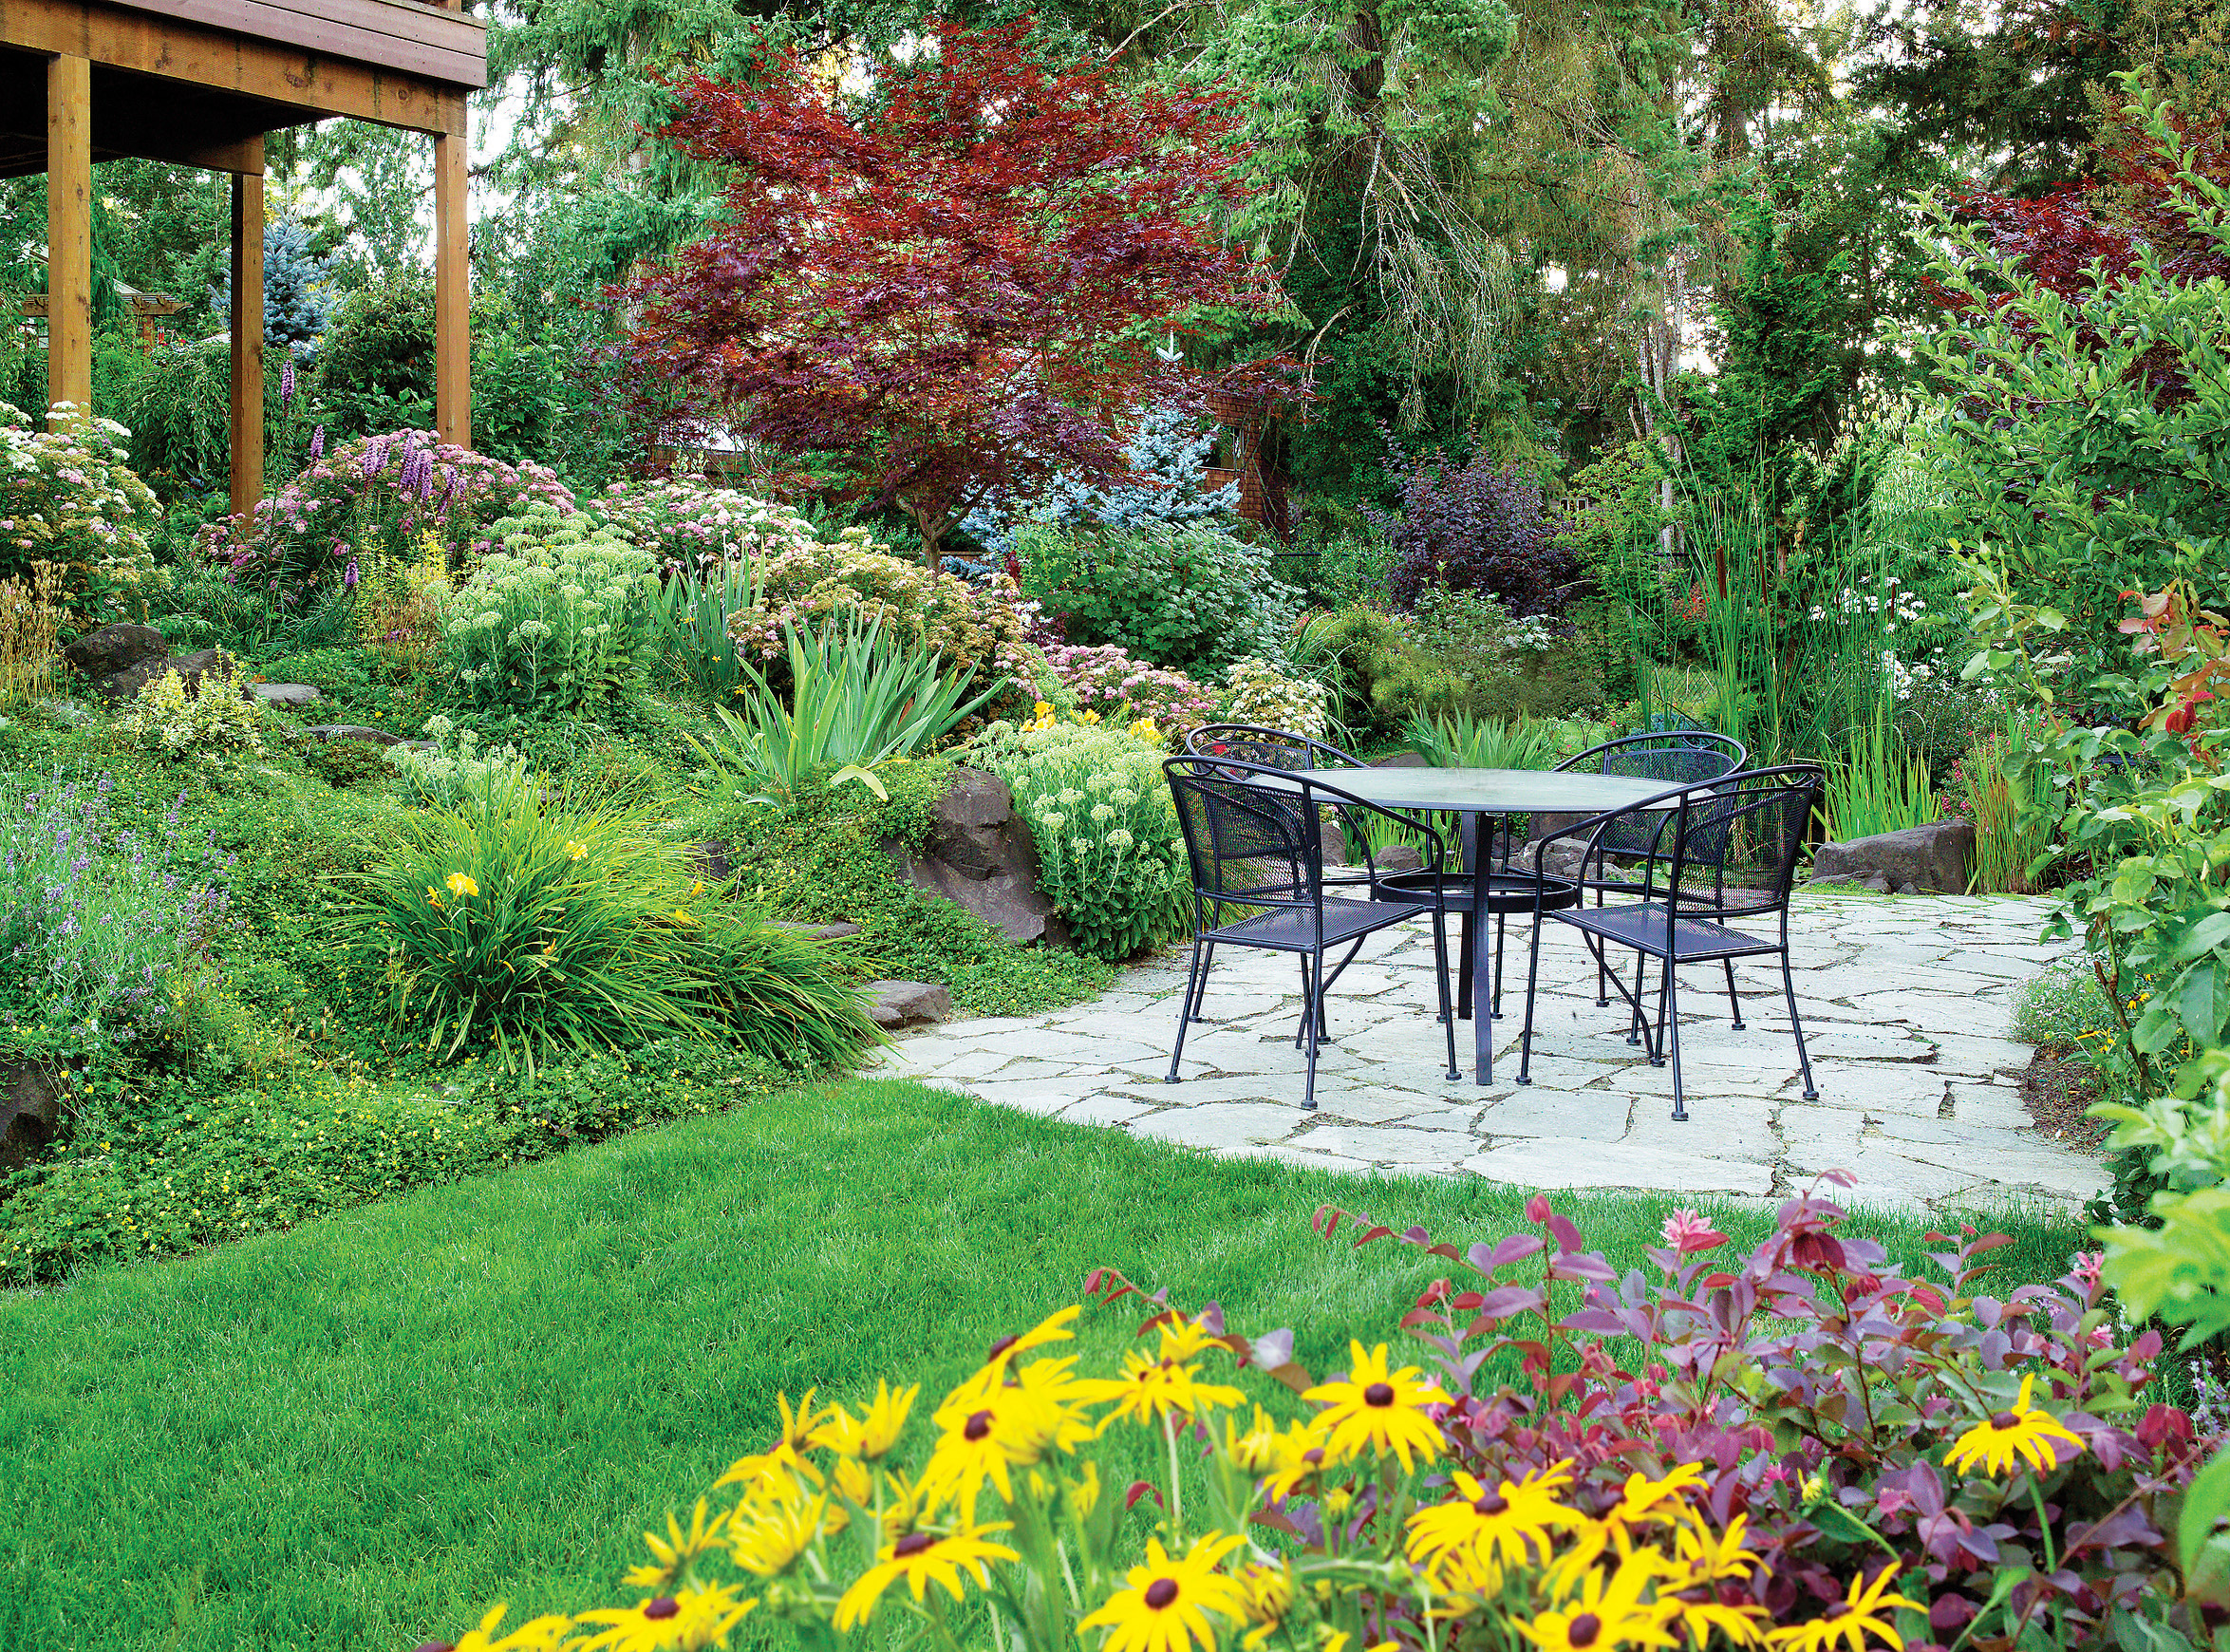 4 Solutions for a Sloped Yard